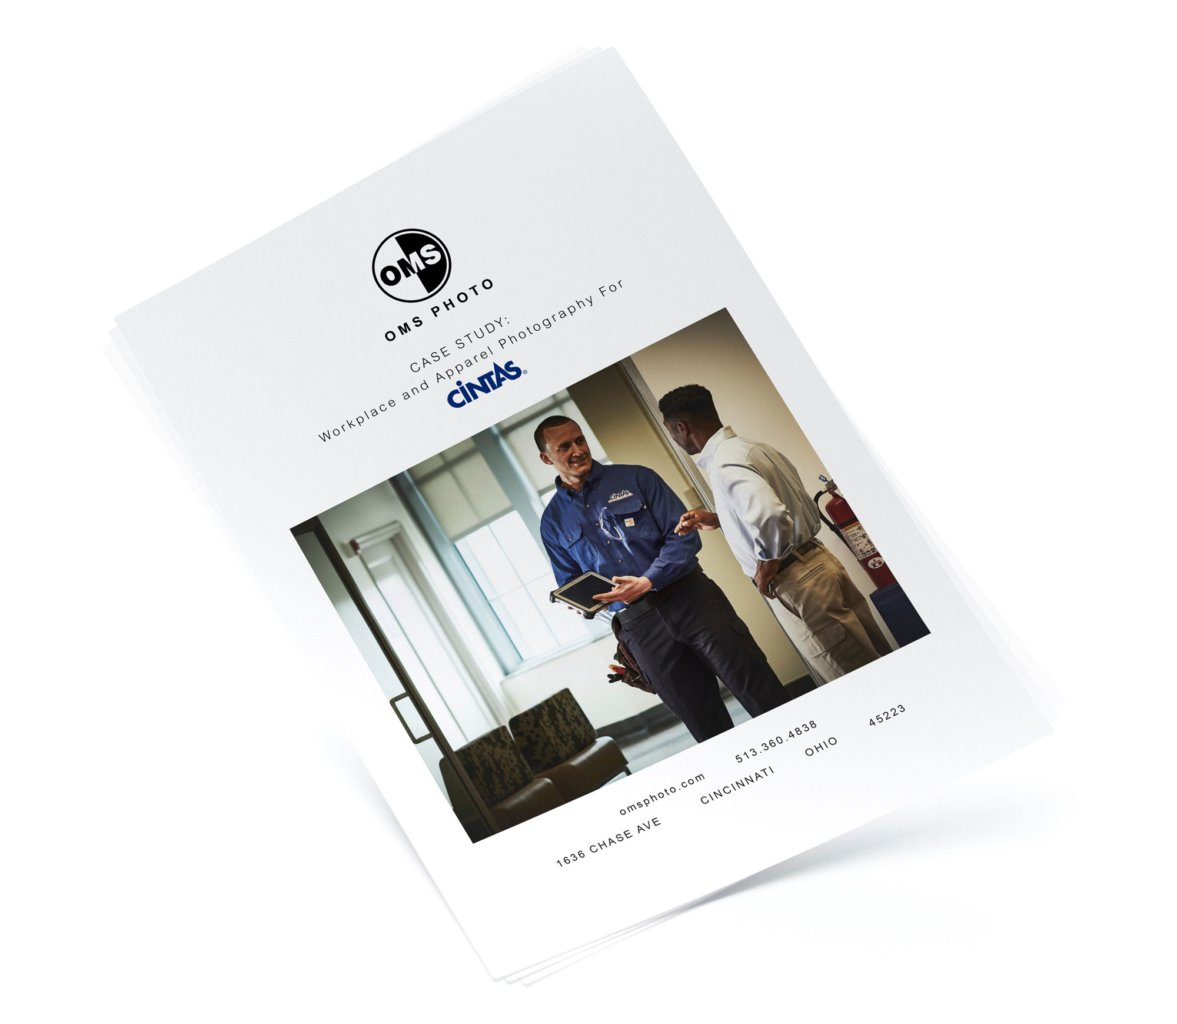 Cover image for Cintas Case Study